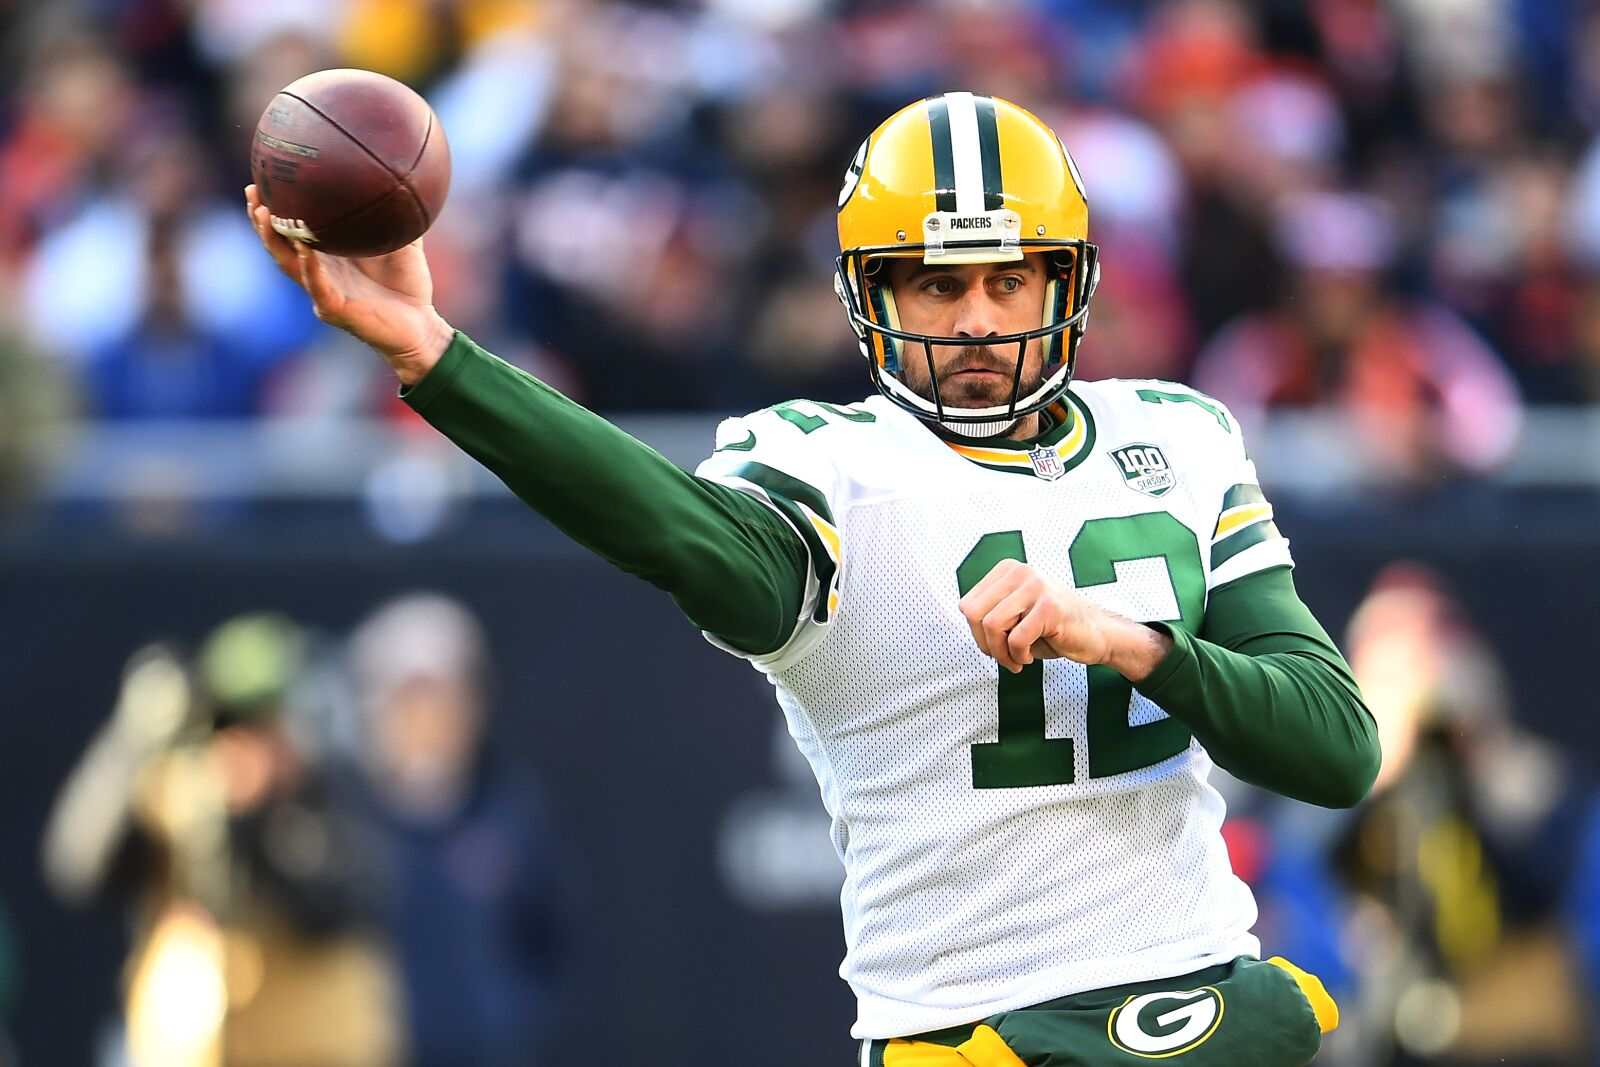 Green Bay Packers Bleacher Report Latest News Scores Stats And